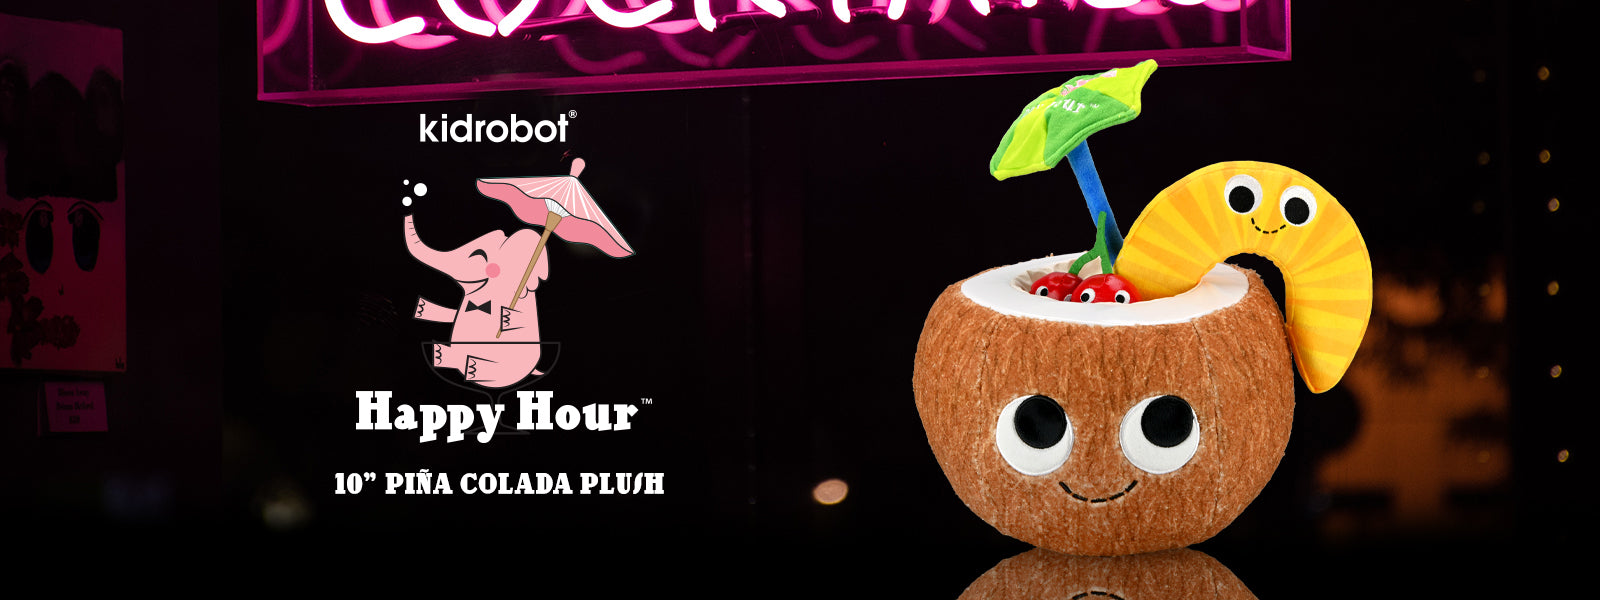 Kidrobot Happy Hour Adult Cocktail Plush - Pina Colada Plush